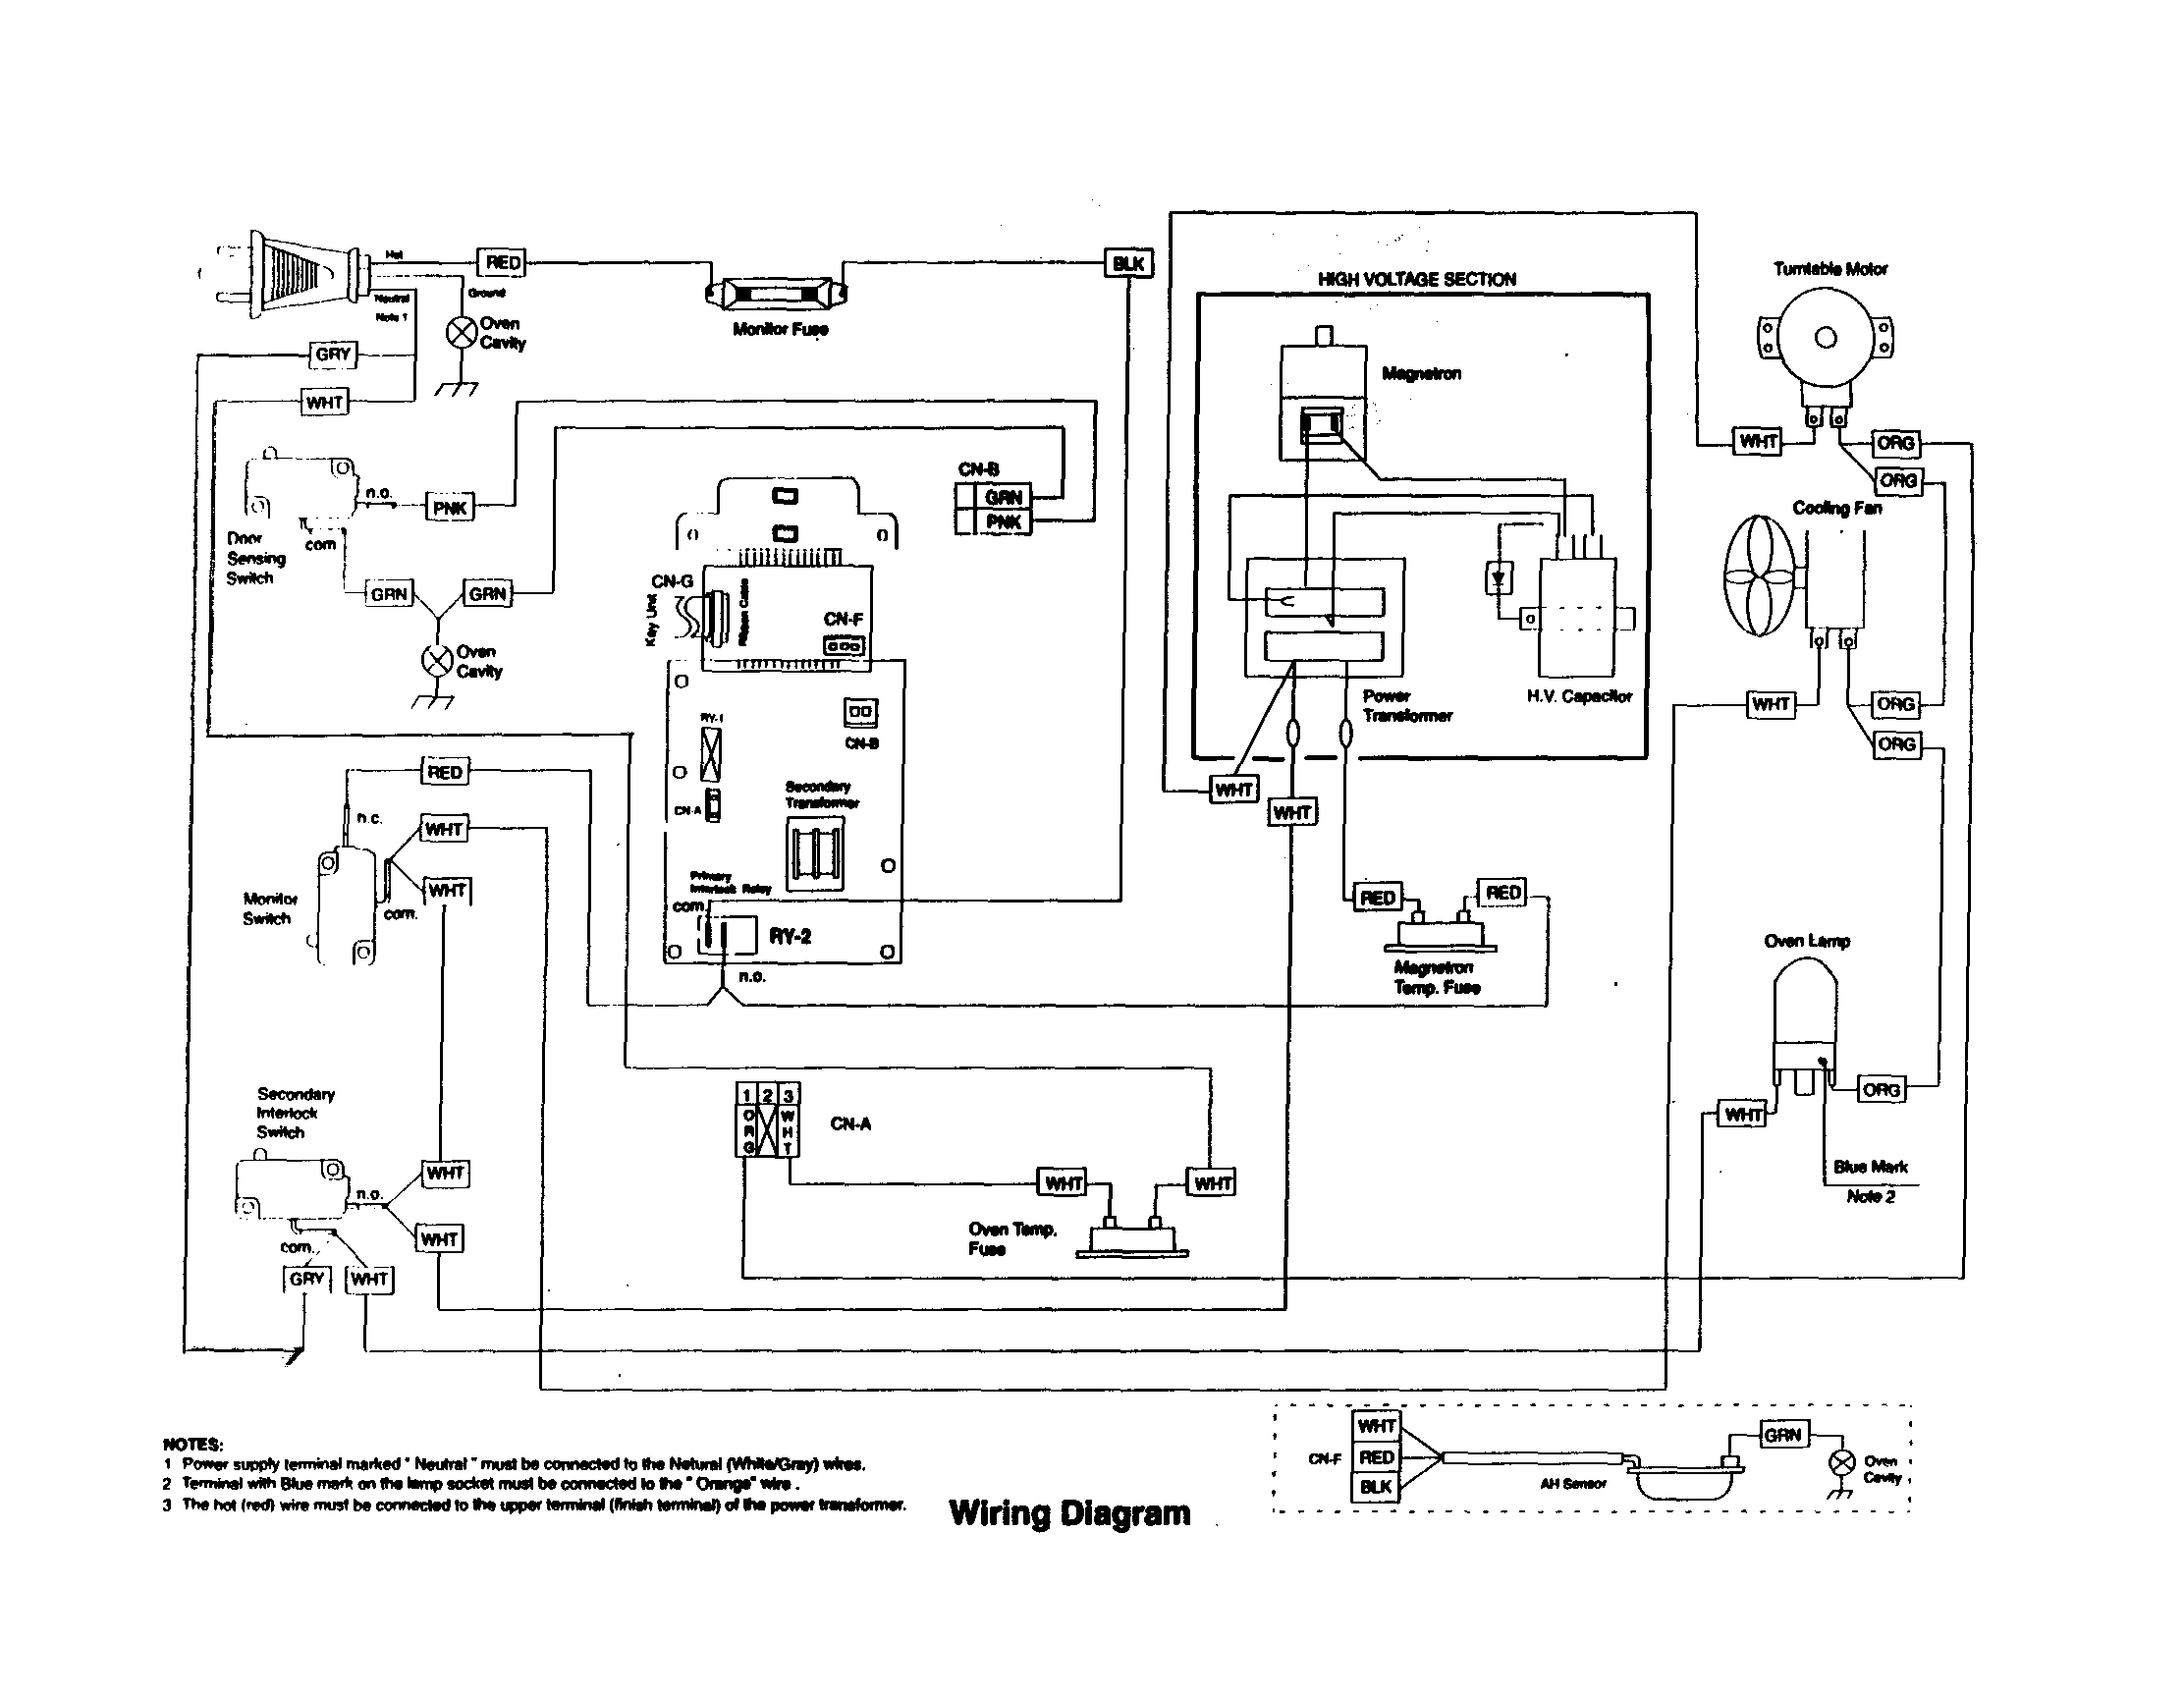 microwave mechanical timer wiring diagram technical diagrams samsung microwave wiring diagram mechanical timer wiring diagram